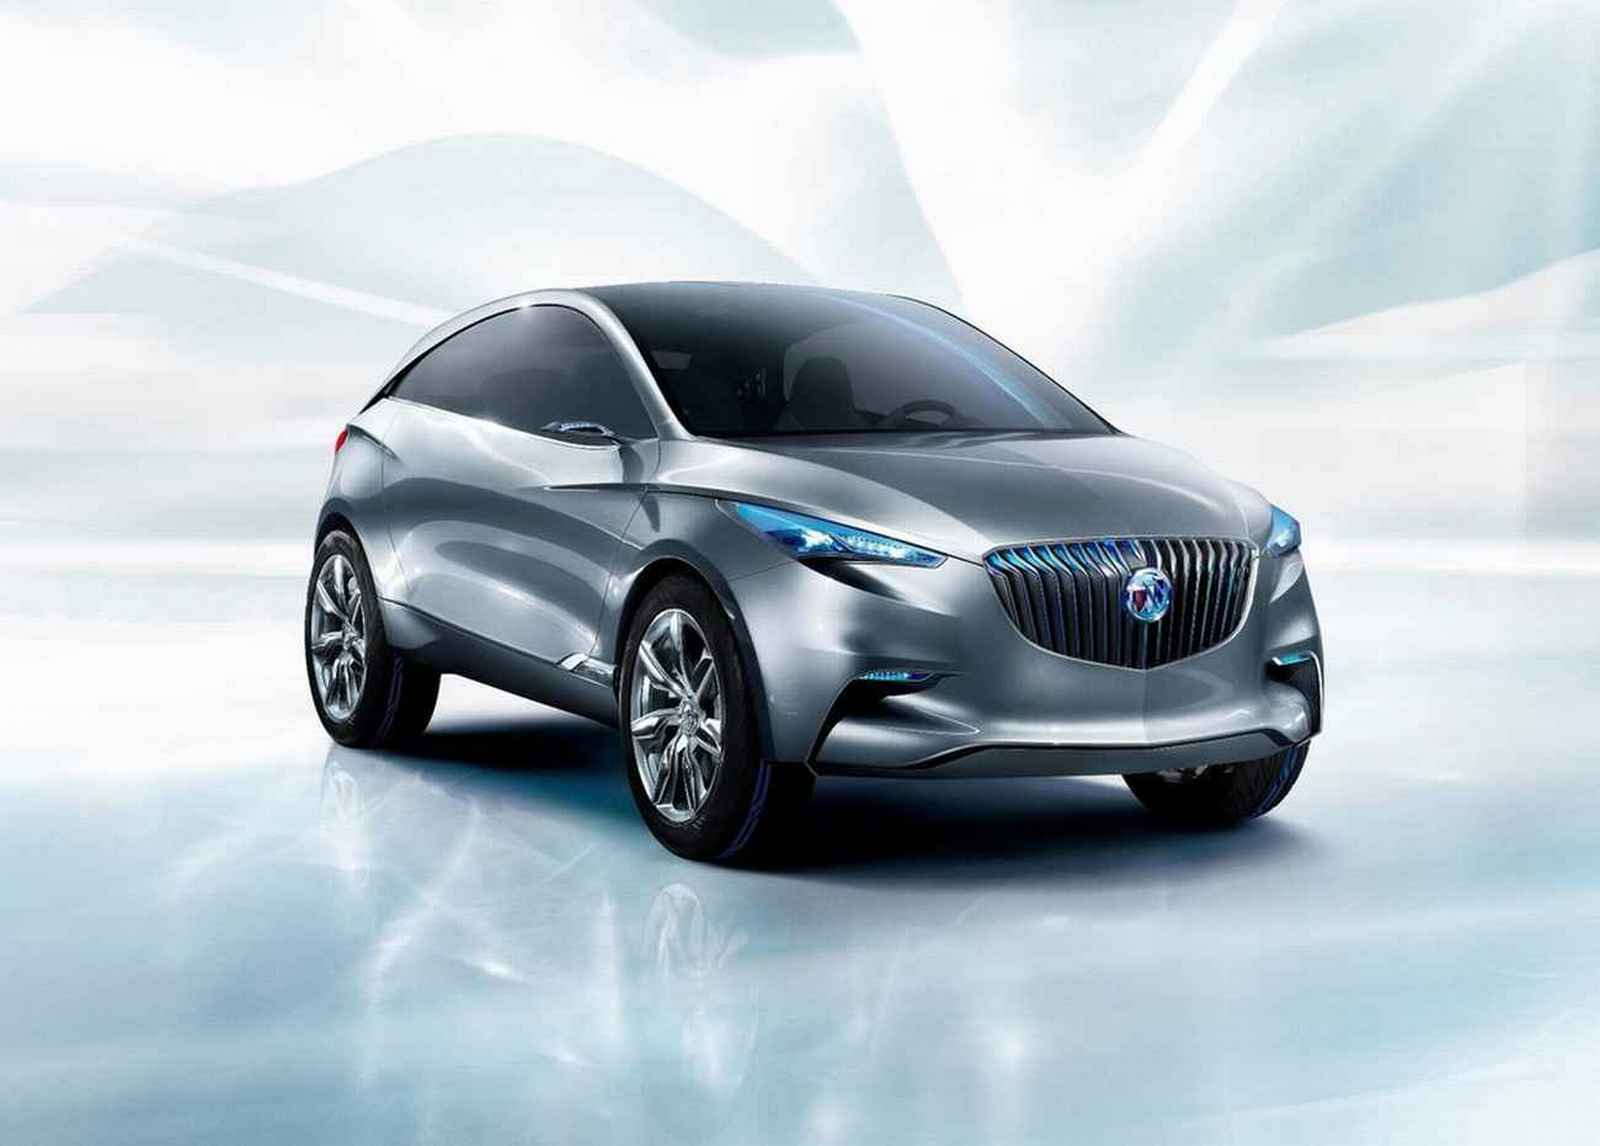 2019 buick envision concept wallpapers - Buick Envision Concept Plug-In Hybrid SUV From Shanghai